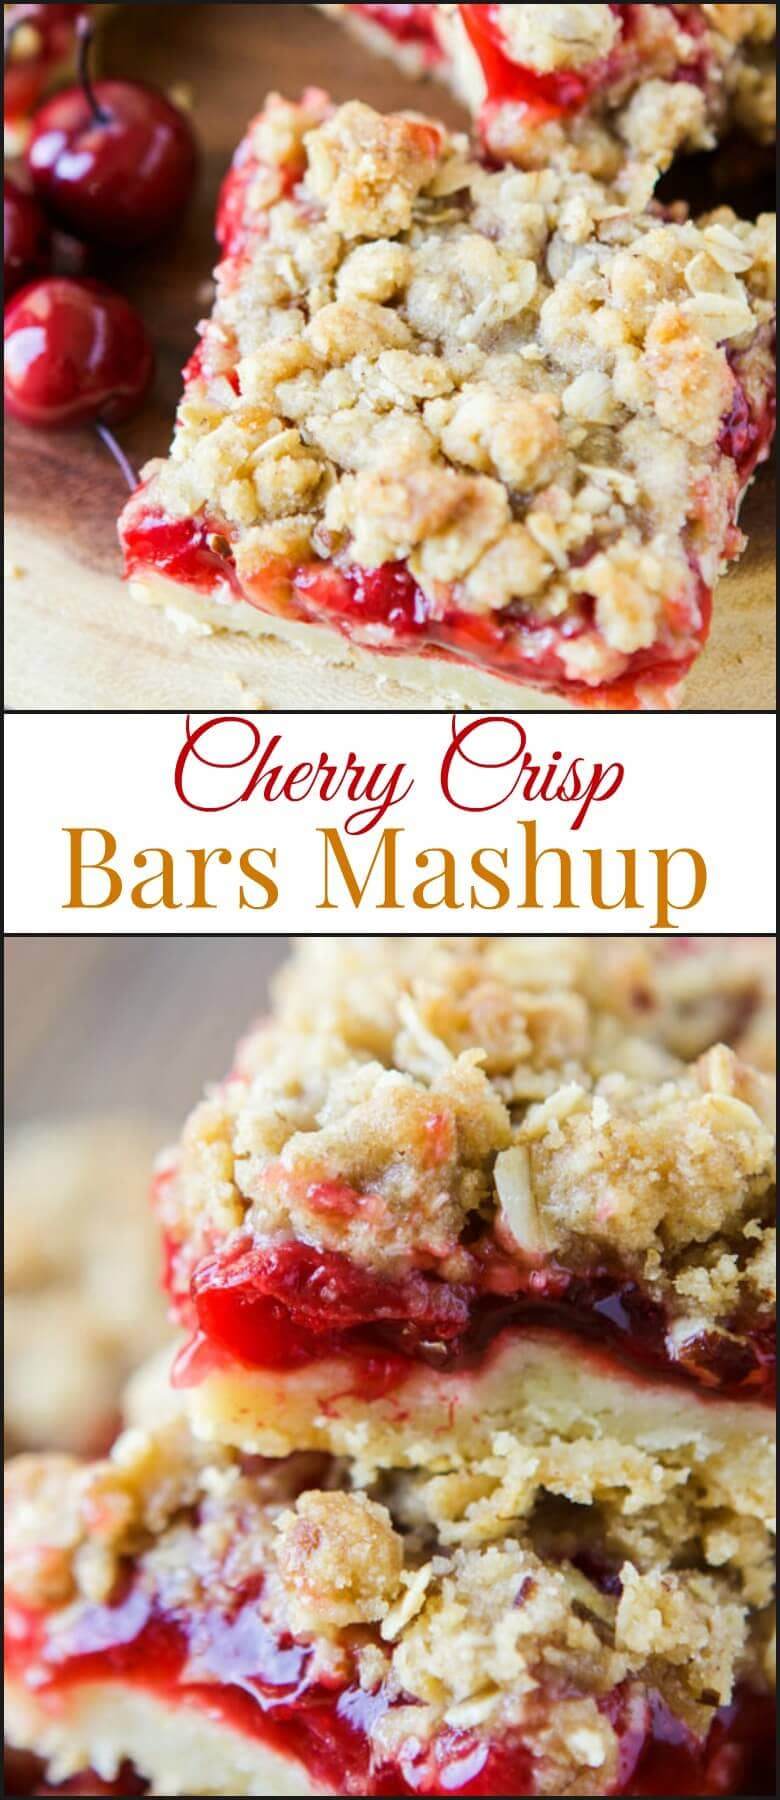 We love pie and crisps so when summer hit and everyone was posting their favorite backyard bbq desserts we had to do a cherry crisp bars mashup recipe. ohsweetbasil.com